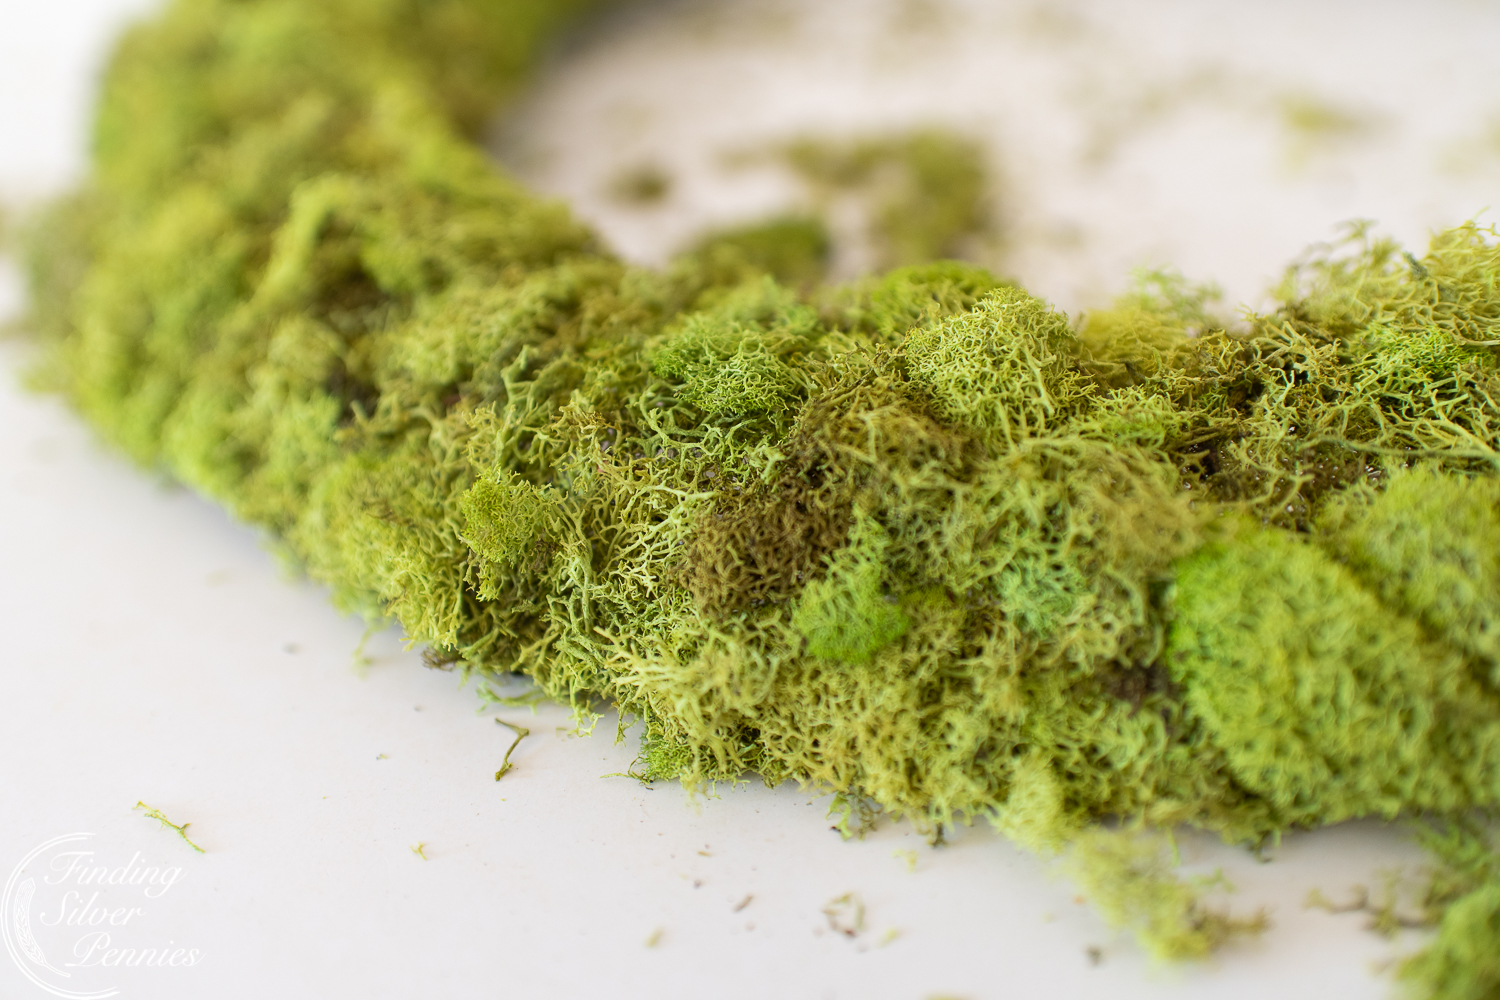 Easy crafts and ways to decorate with moss #moss #crafts #DIYmosswreath #diymossnapkinrings #winterdecorating #hygge #cozyliving